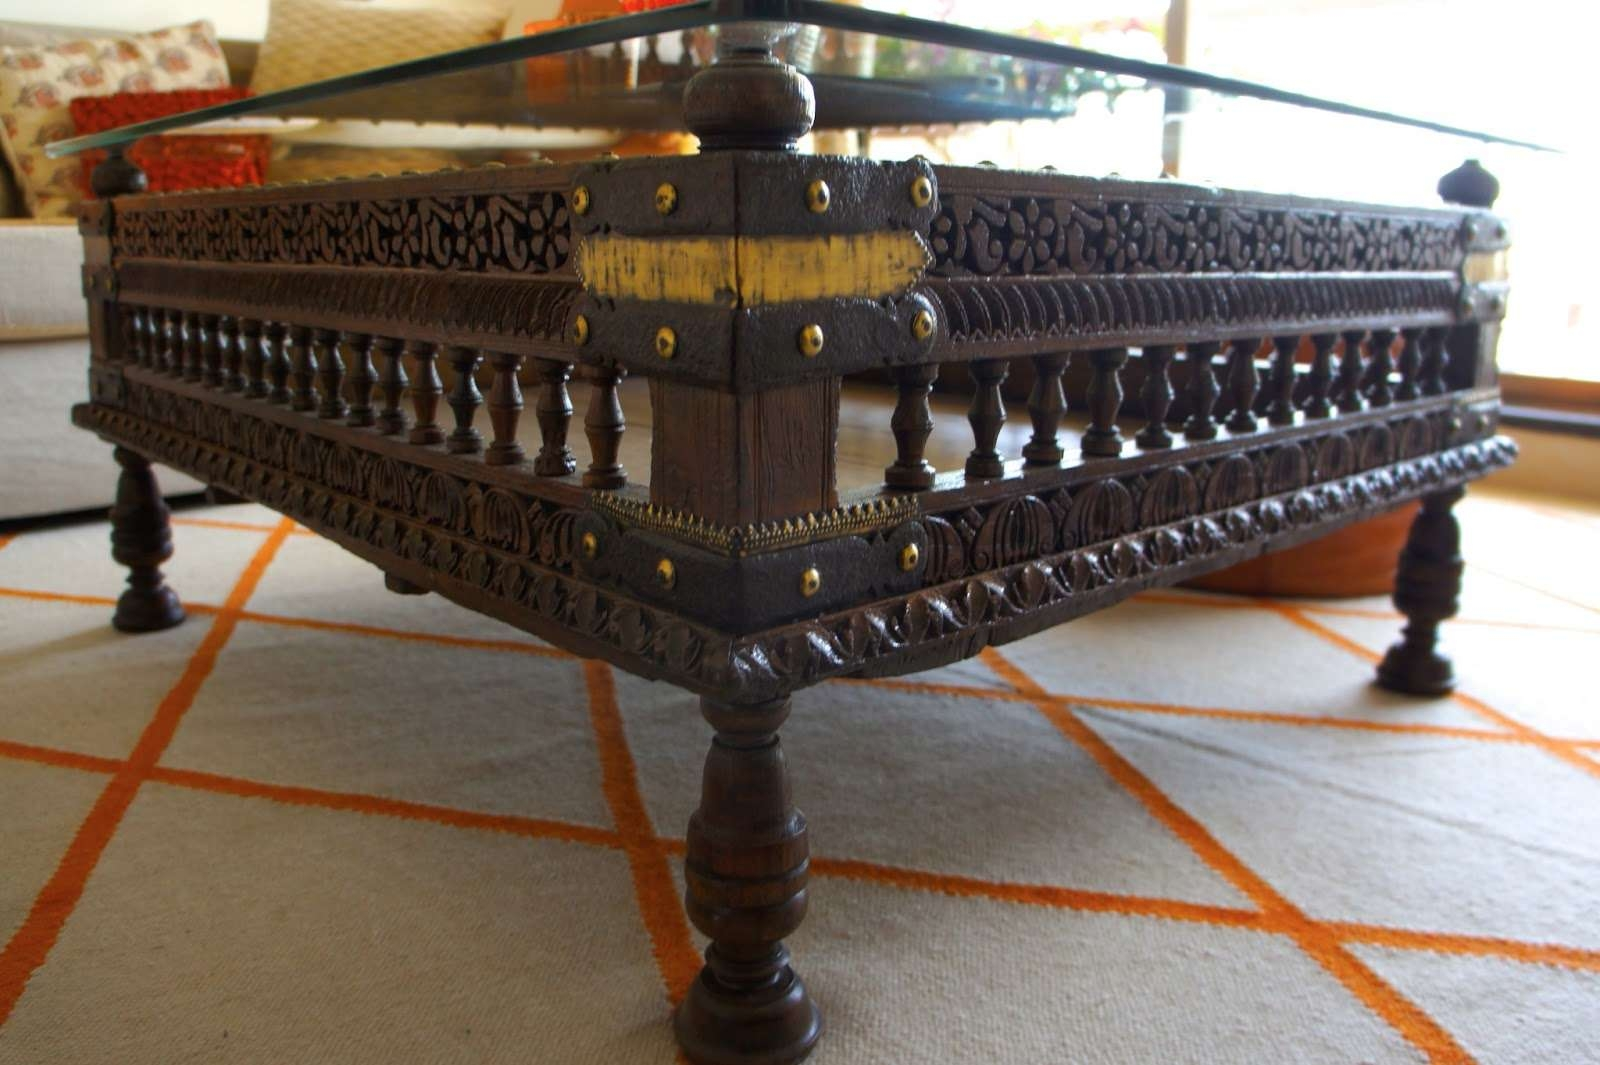 2018 Ethnic Coffee Tables Throughout Bombayjules: An End To The Coffee Table Saga! (View 1 of 20)